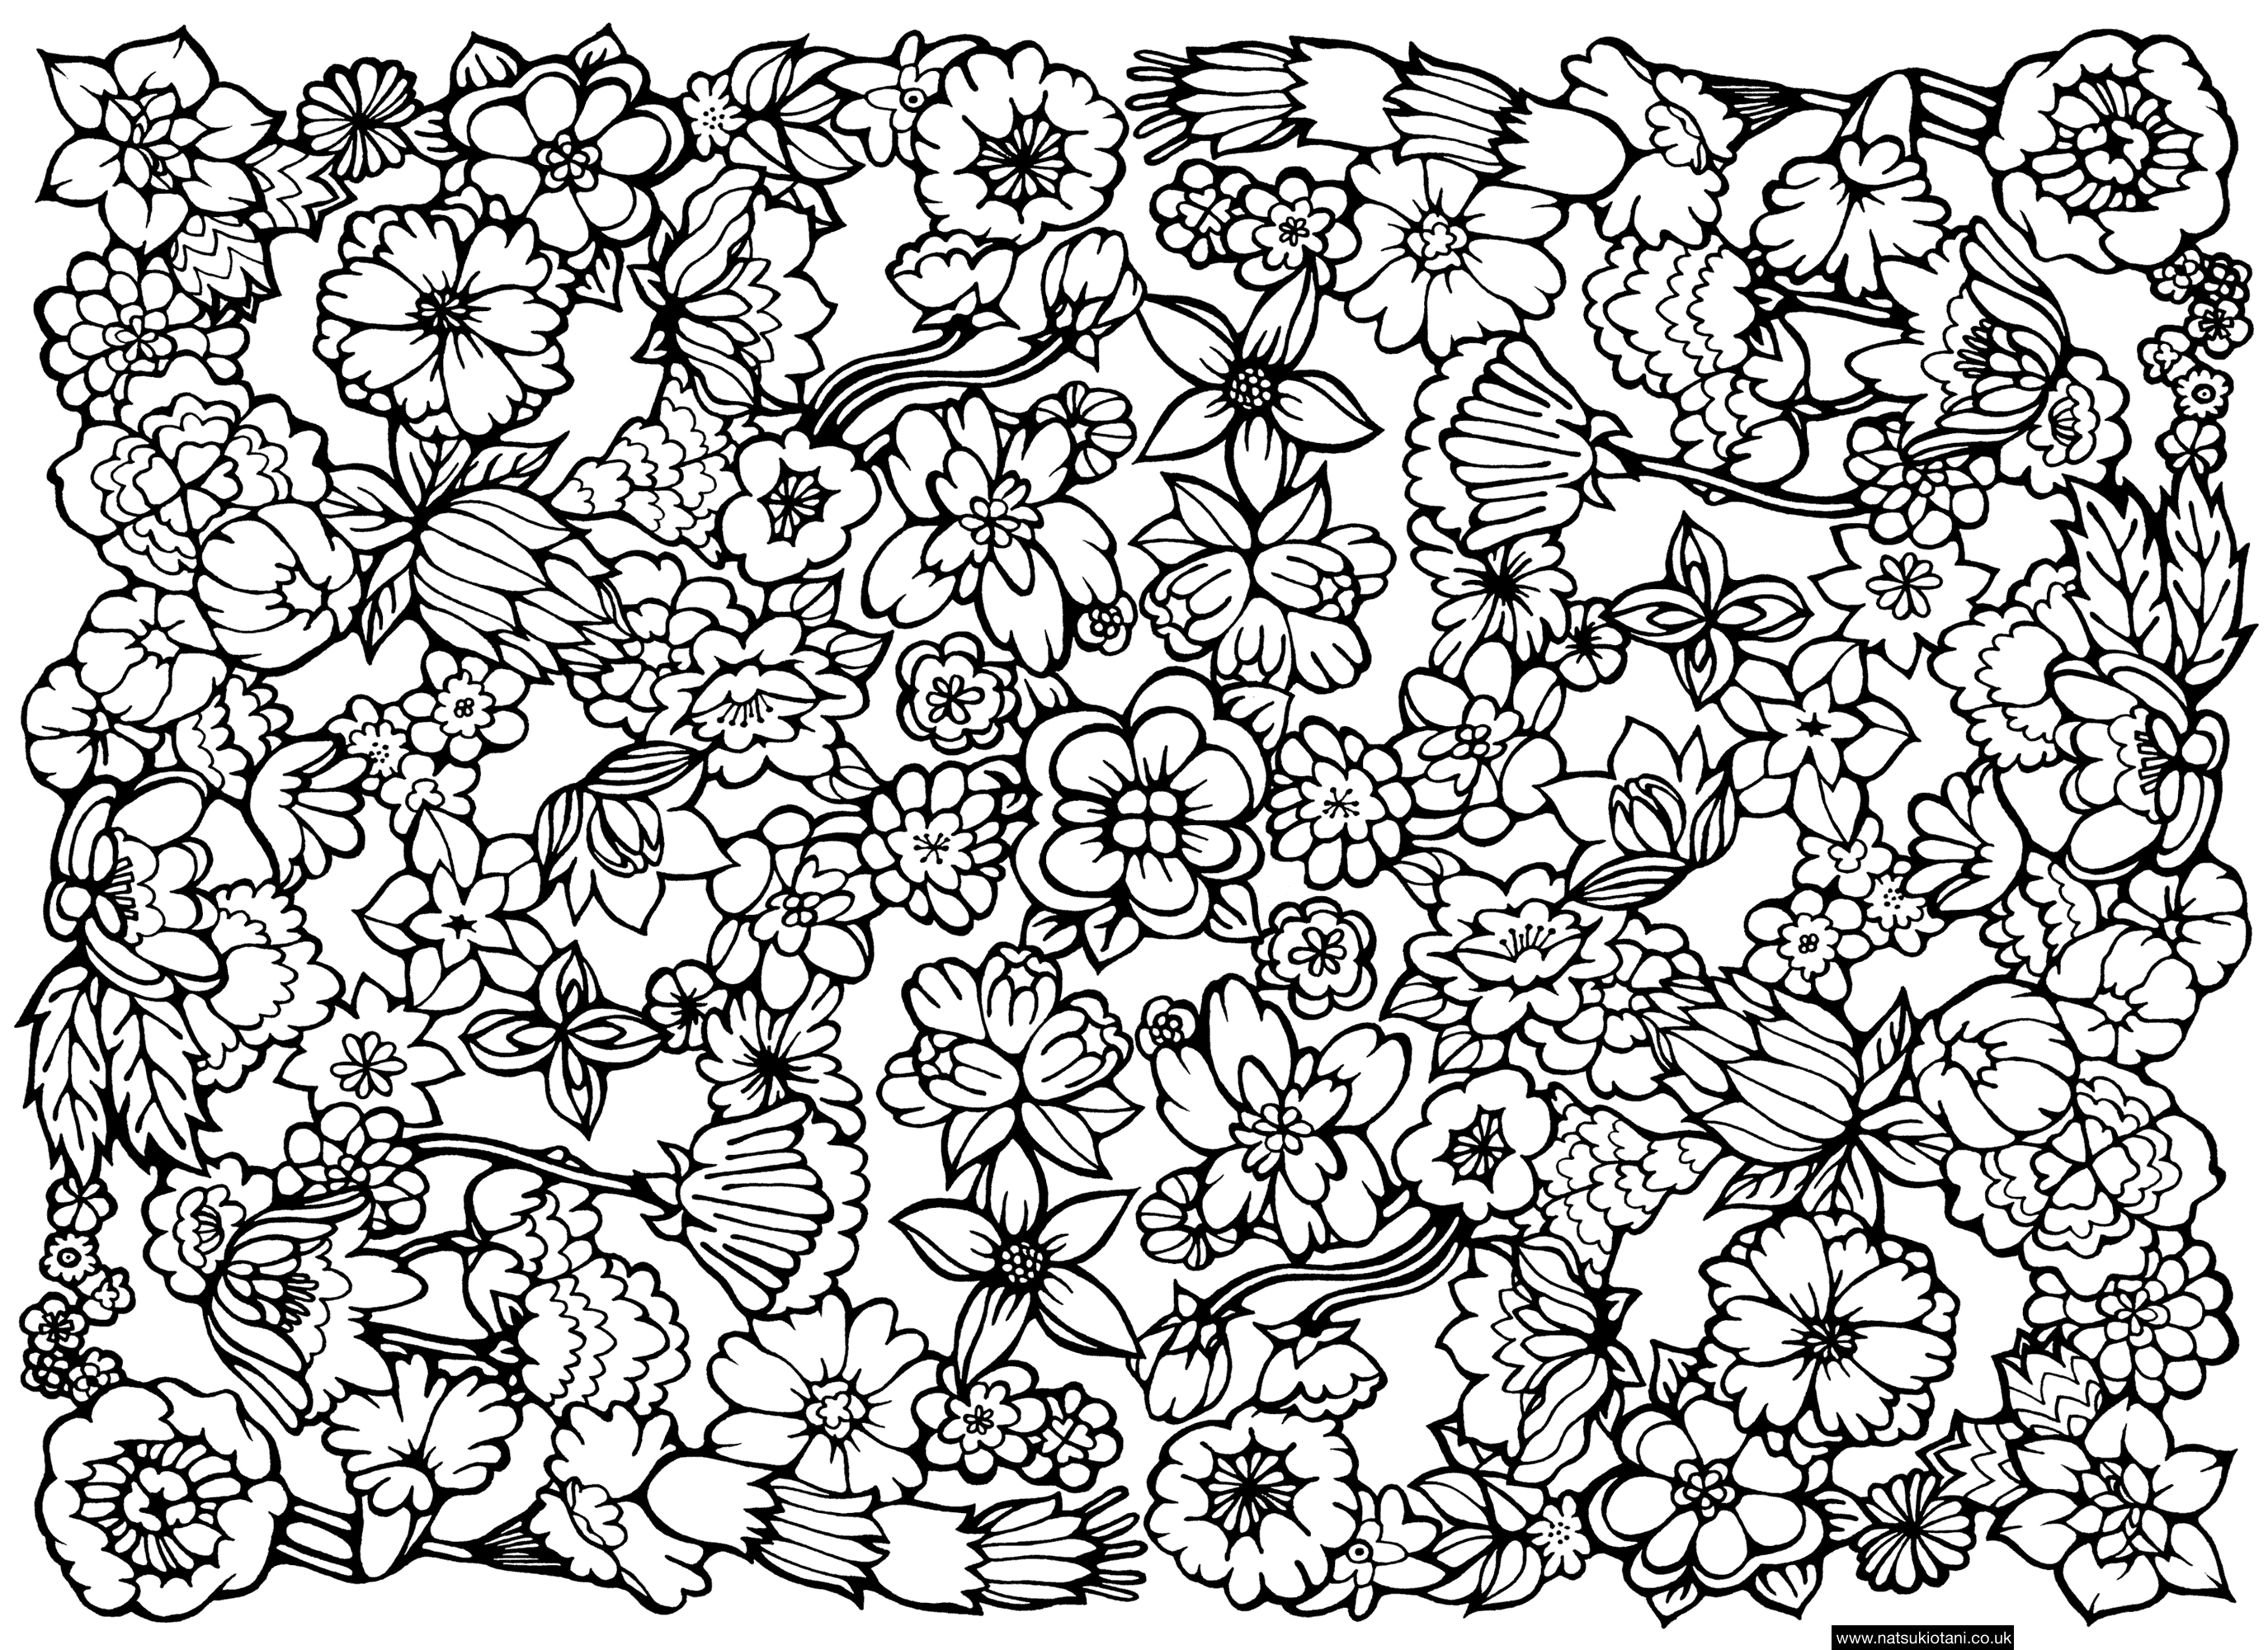 2749x2000 Inspiration Patterns Coloring Pages To Print